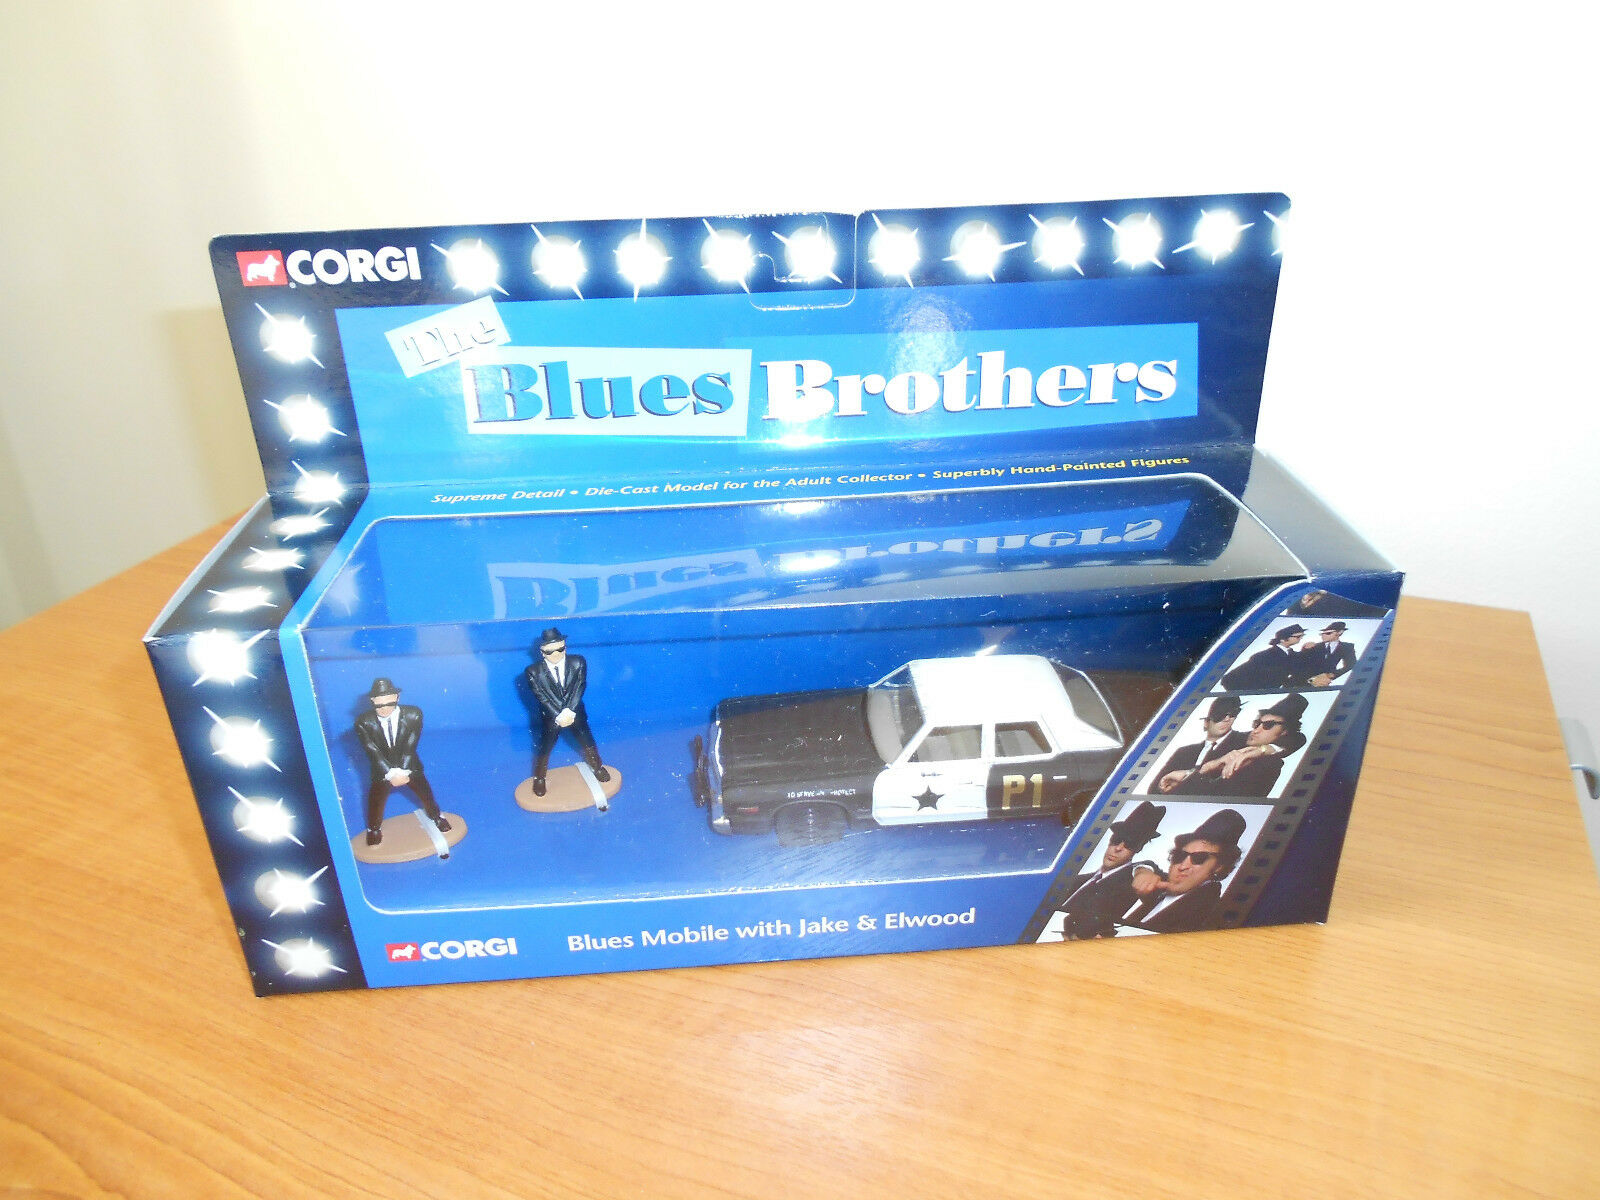 CORGI CC06001  The blus Brossohers  Dodge Monaco